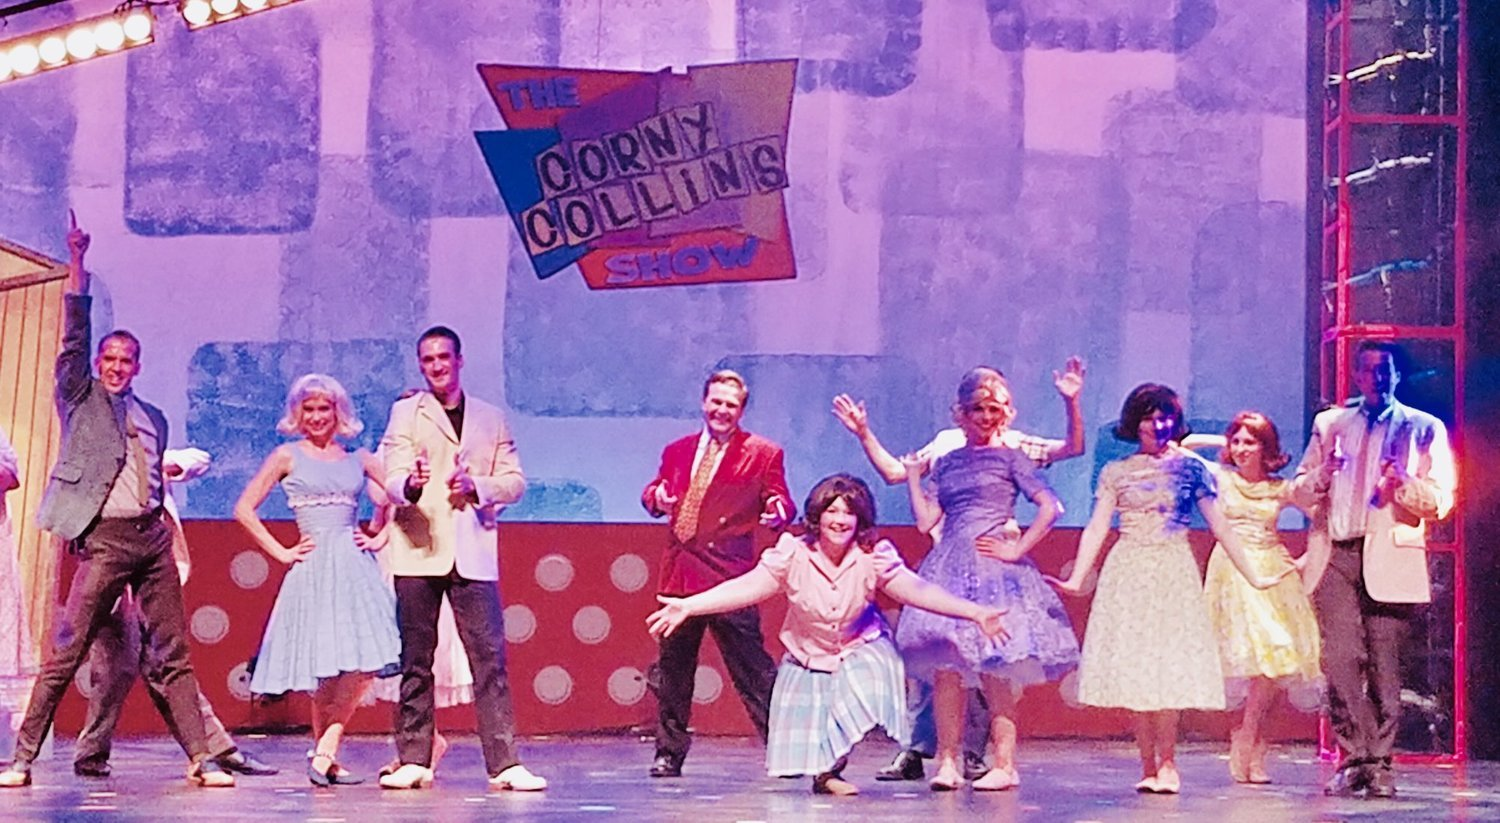 BWW Review: HAIRSPRAY at Theatre Harrisburg